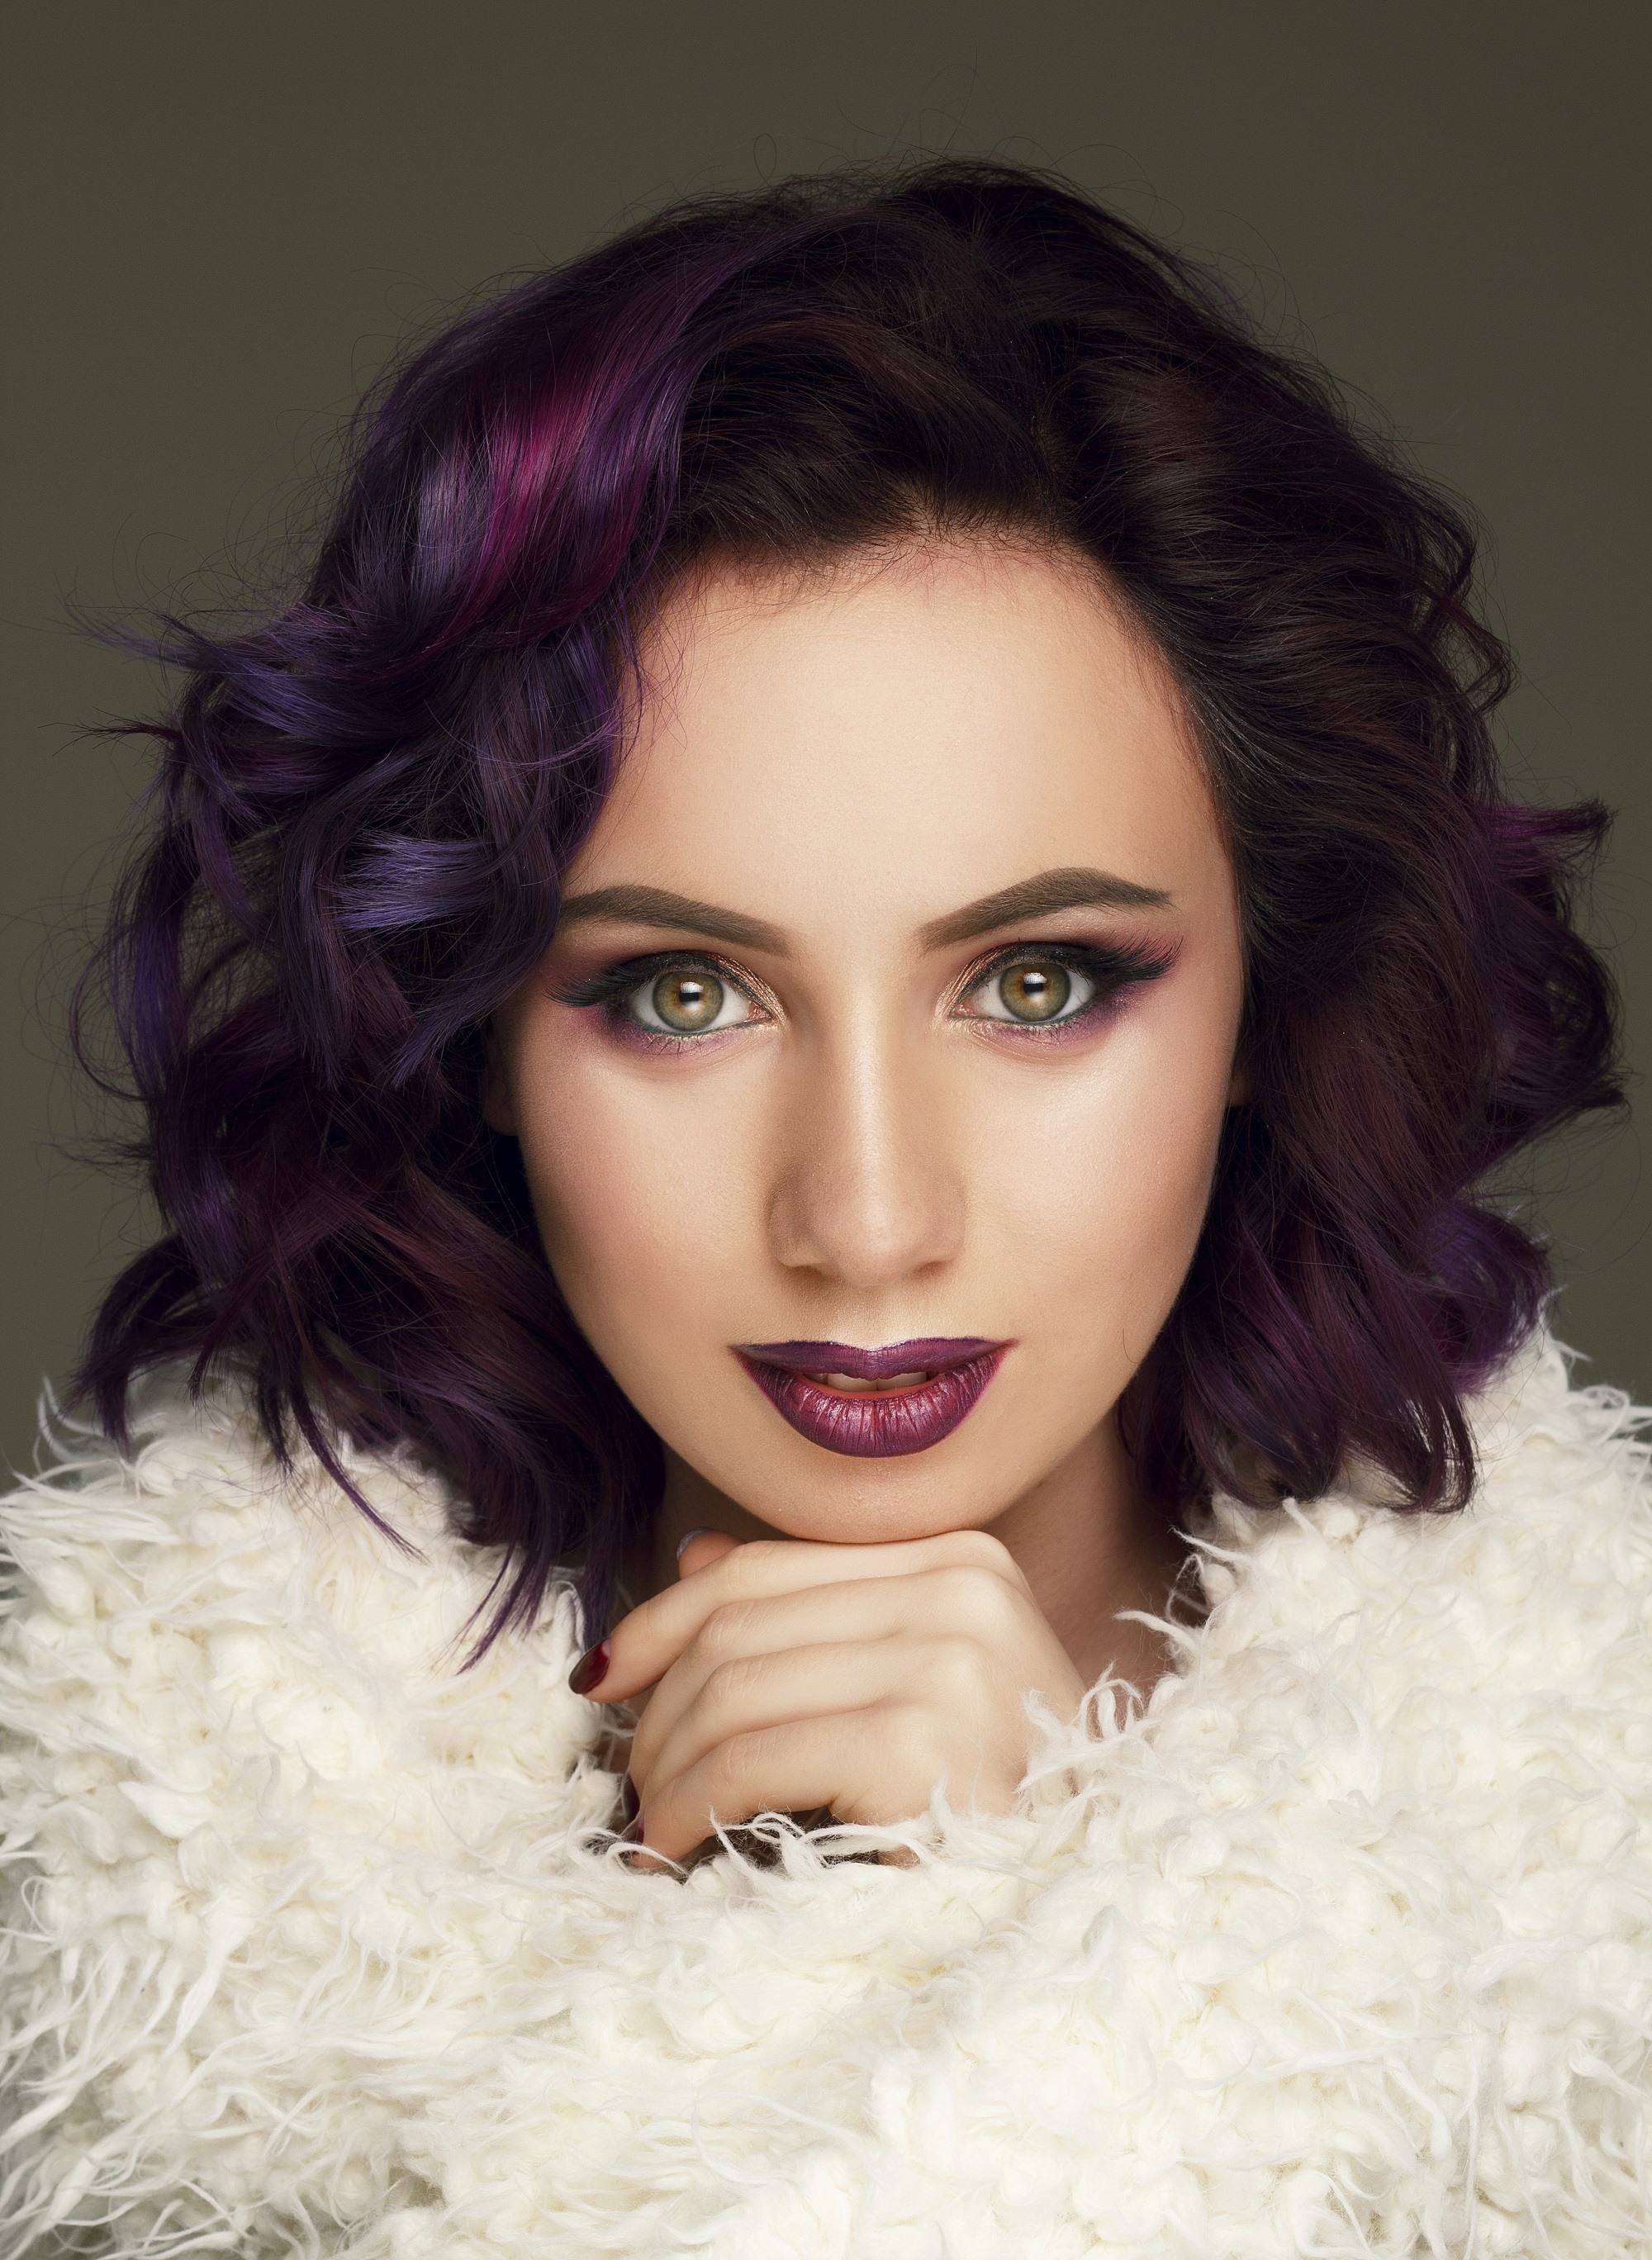 Hair color for curly hair: Closeup shot of a woman wearing white fur coat with short purple curly hair